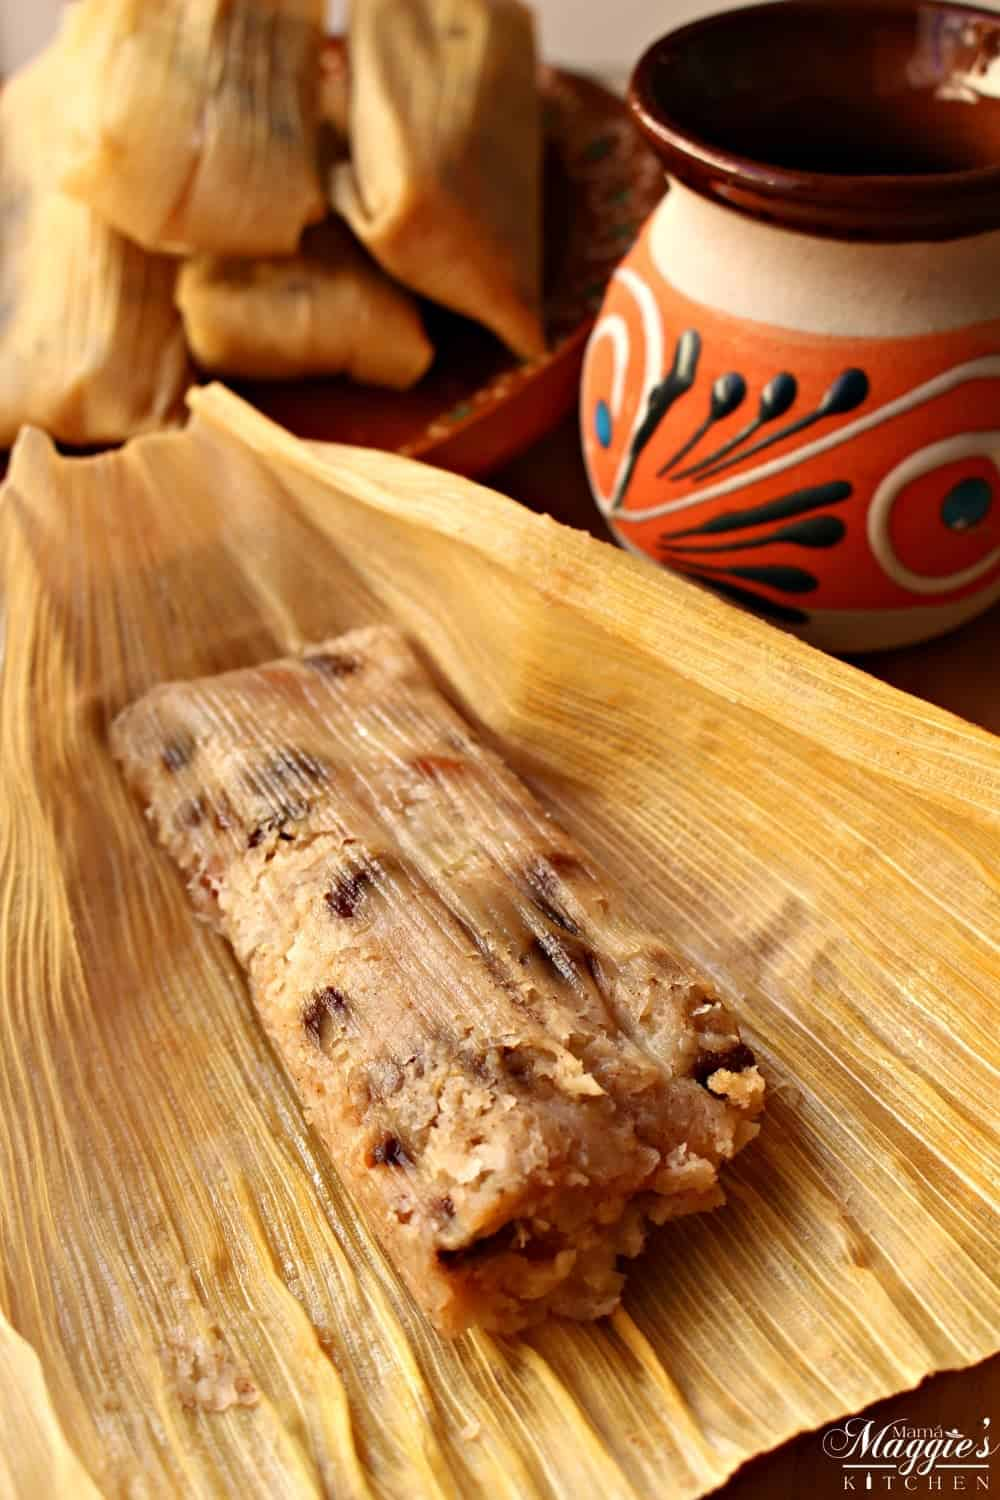 Tamales Dulces (Sweet Tamales) unwrapped but still in the corn husk surrounded by a pile of tamales and a decorative Mexican cup.